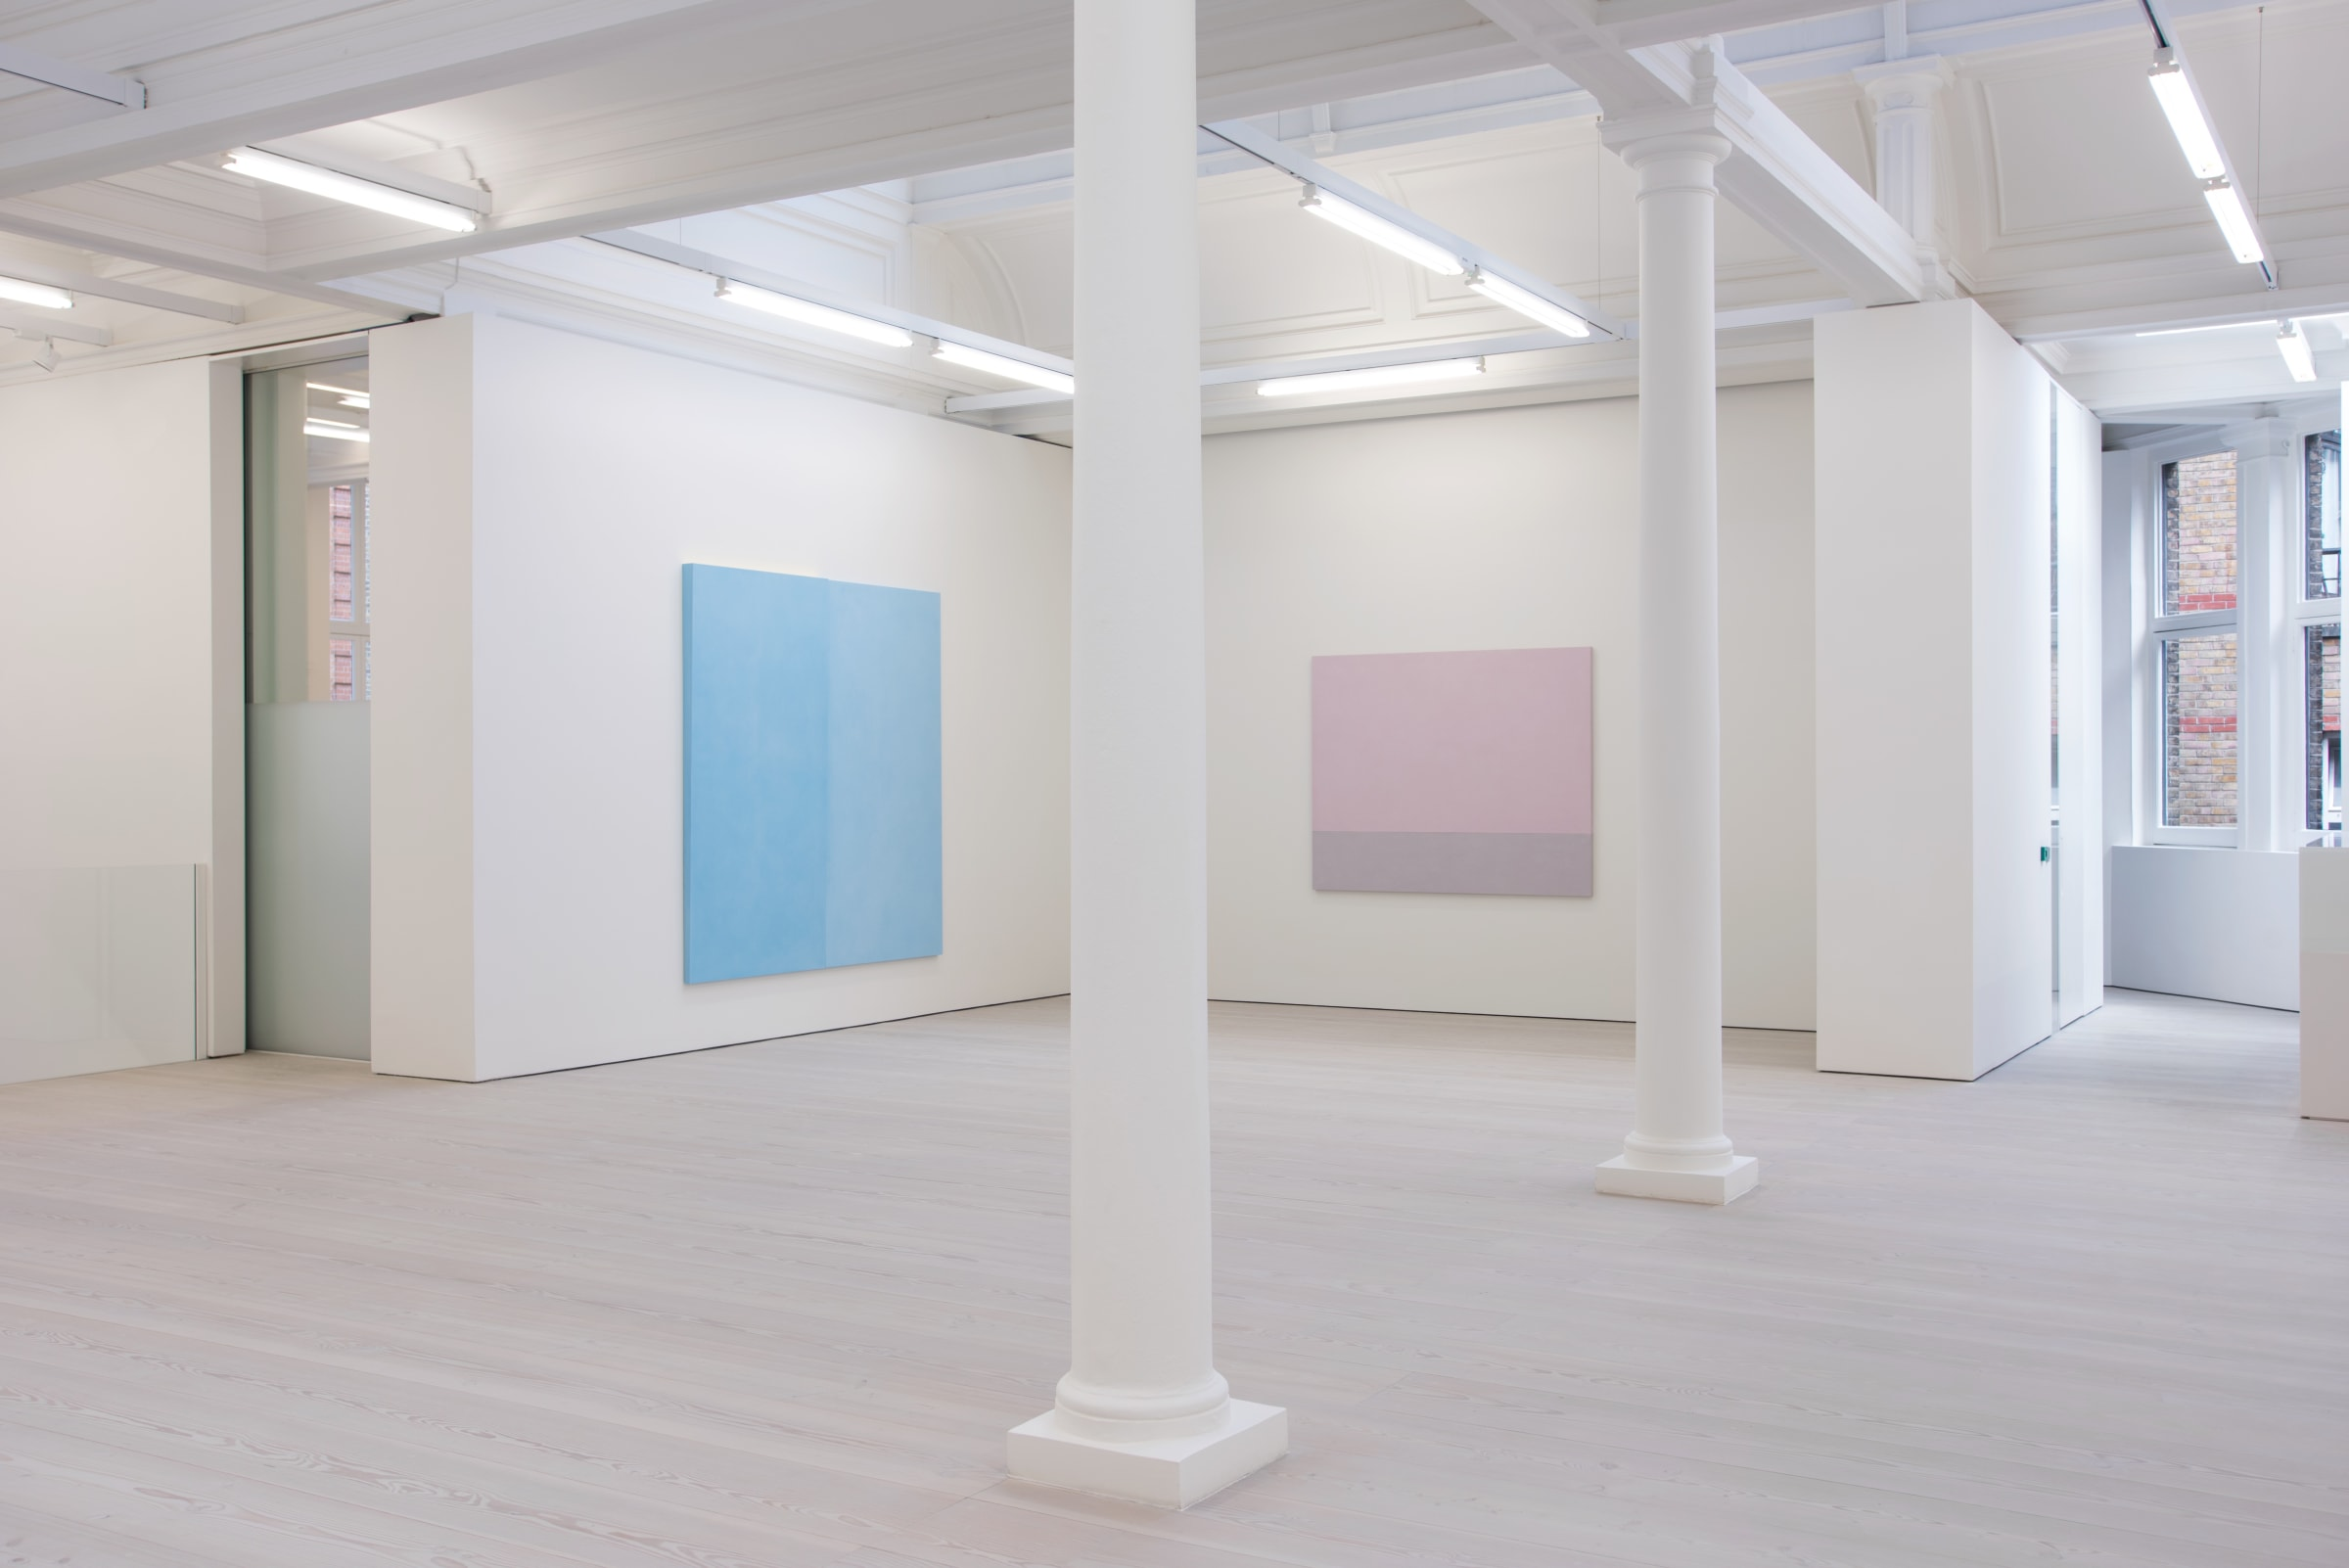 In a white gallery space with columns and a window to the left, two paintings hang: one light blue on the left wall, and one light pink straight ahead.